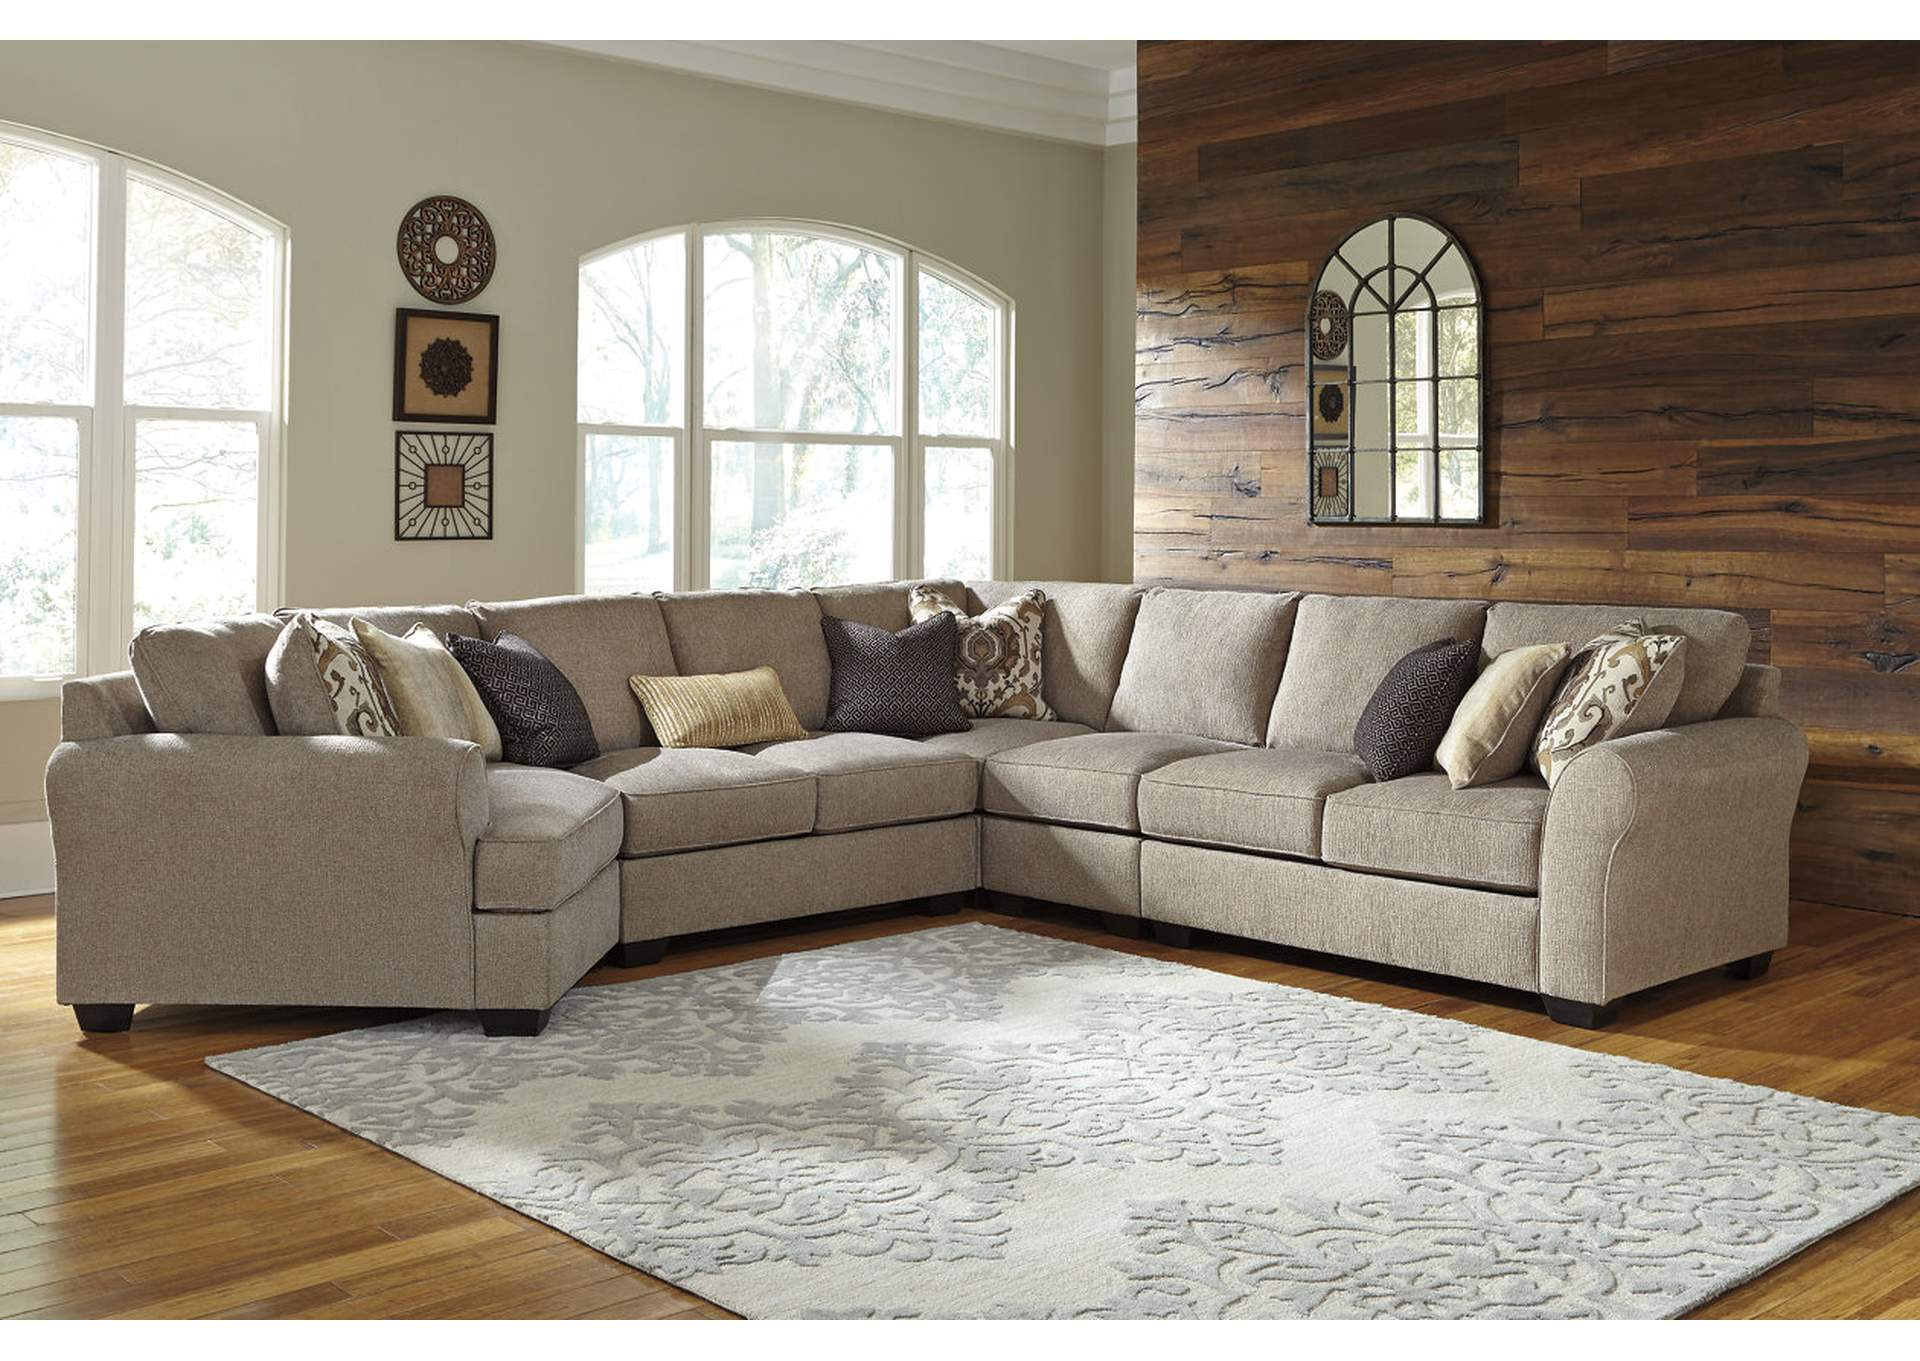 Pantomine Driftwood Extended Sectional w/Left Facing Cuddler,ABF Benchcraft